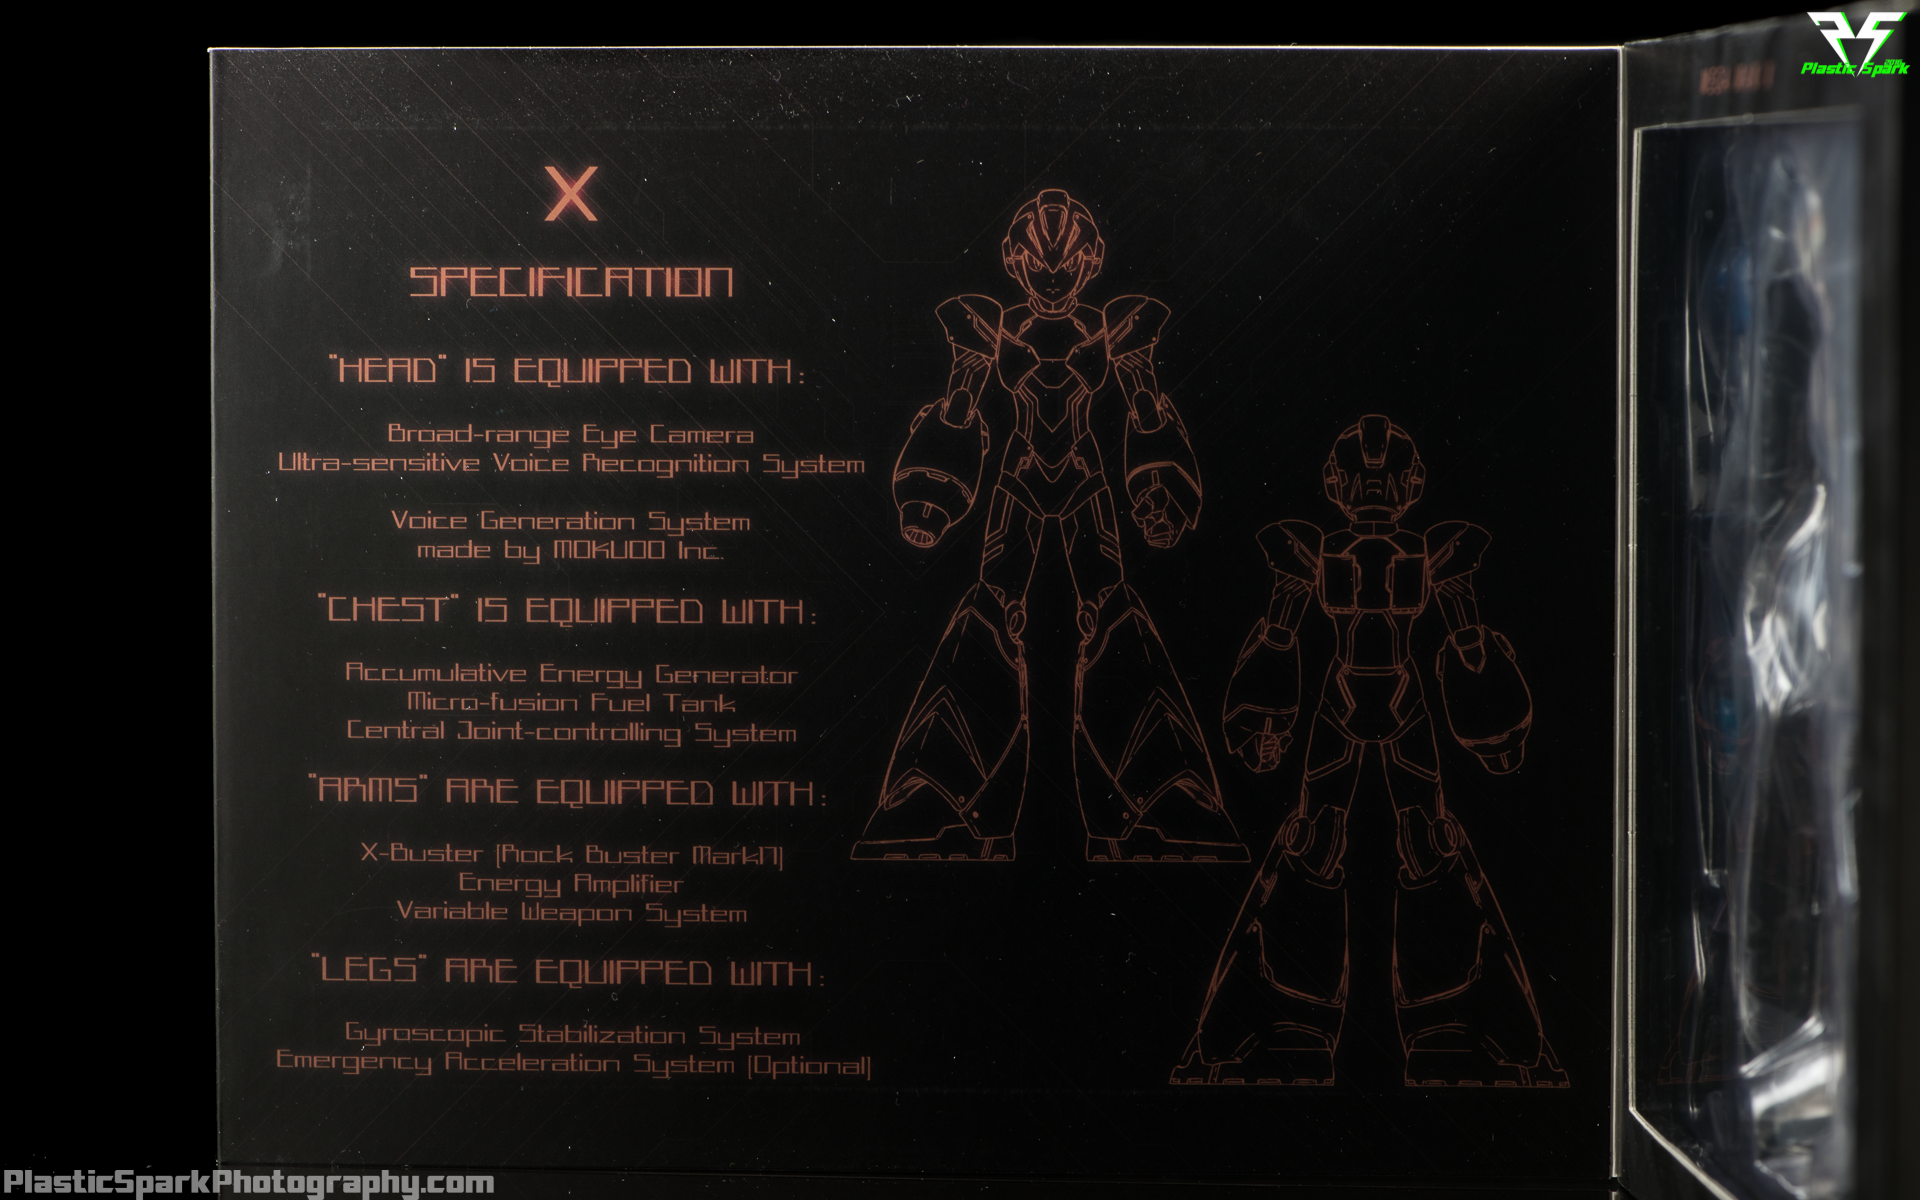 Truforce-Megaman-X-Kickstarter-Variant-Packaging-(6-of-6).png